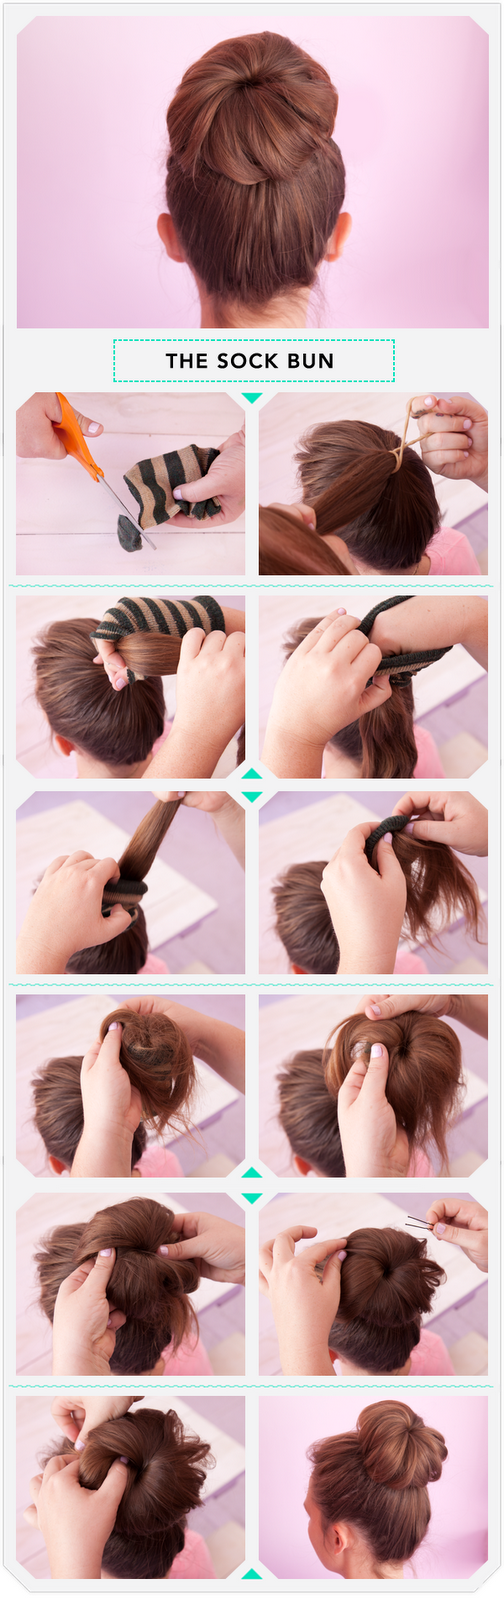 AmberFabulous: #HowTo; How To Style Your Hair On A Bad Hair Day